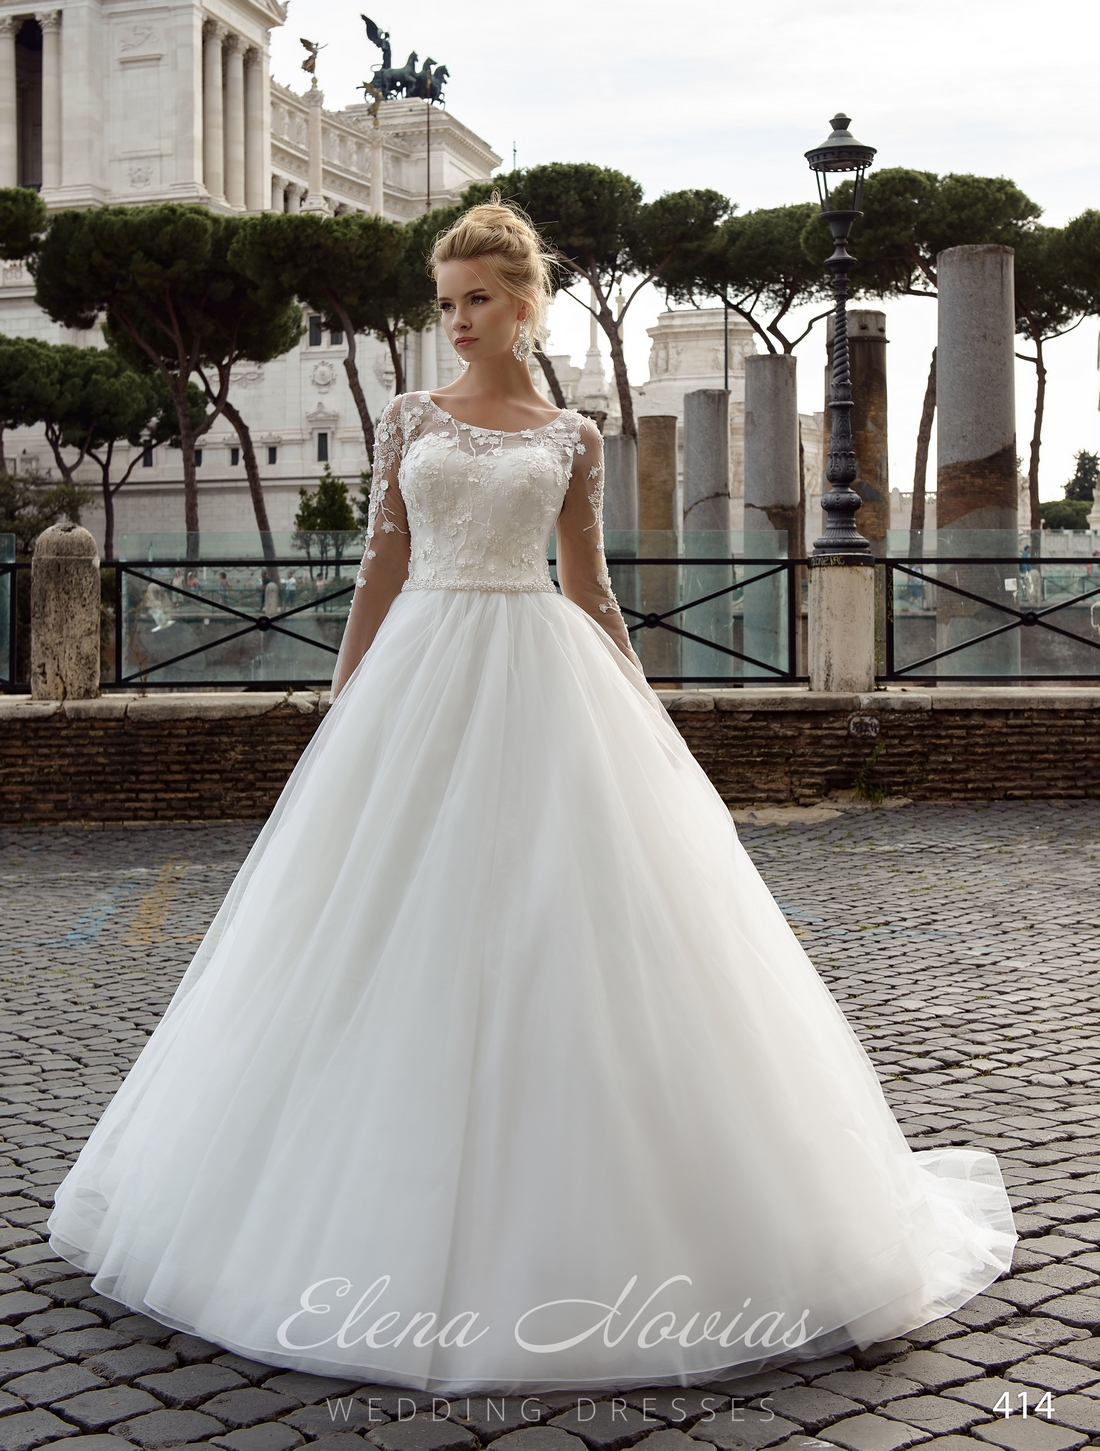 Wedding dress wholesale 414